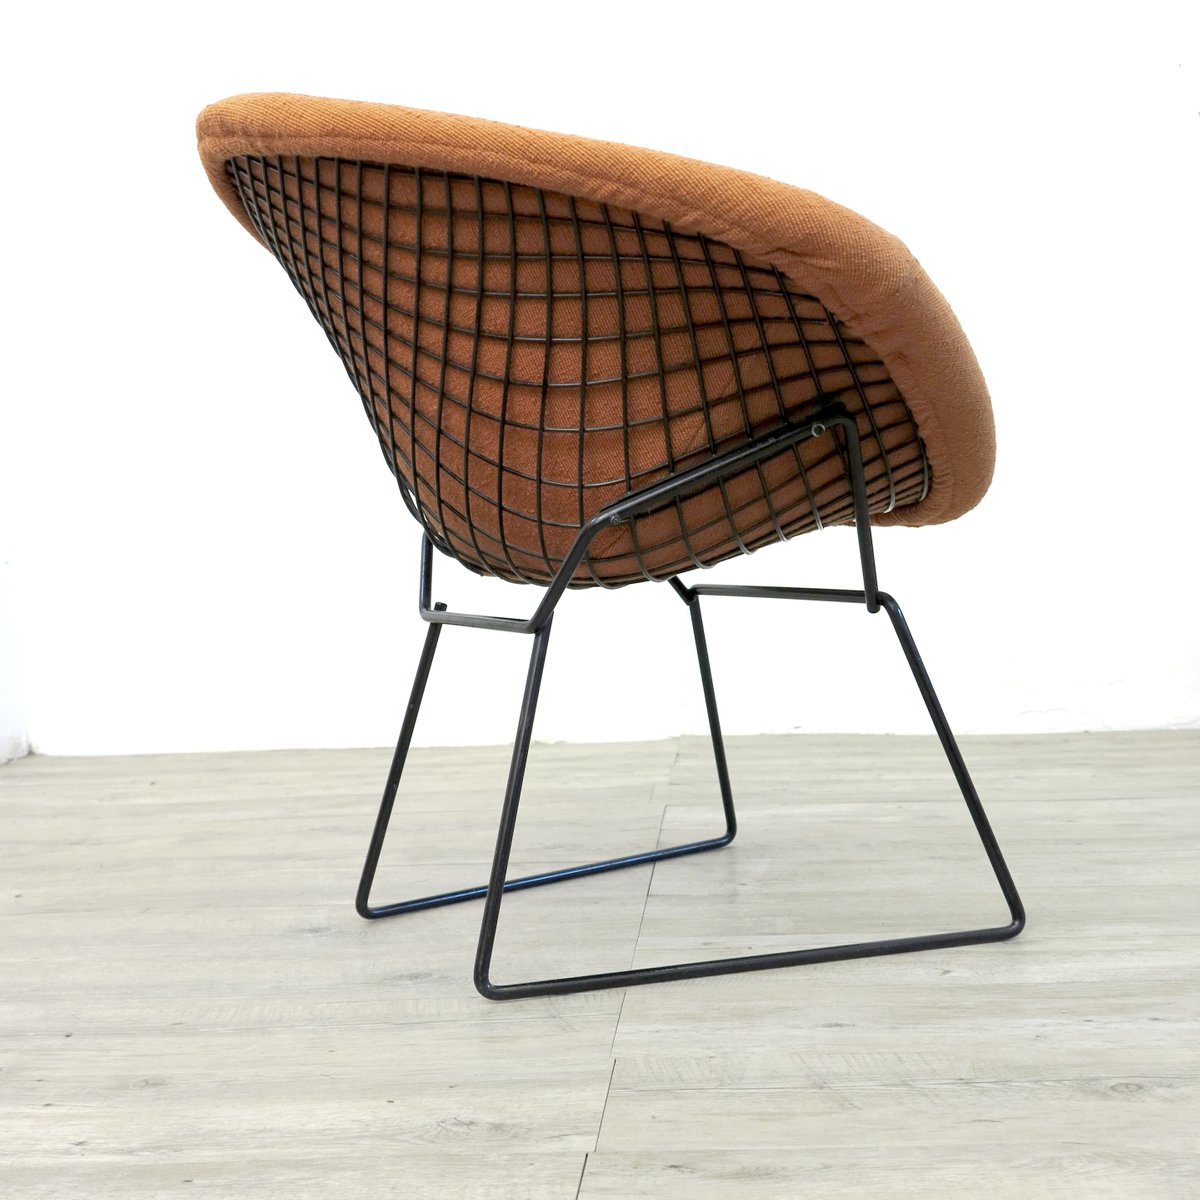 Bertoia Chairs Vintage Diamond Chair By Harry Bertoia For Knoll 1970s